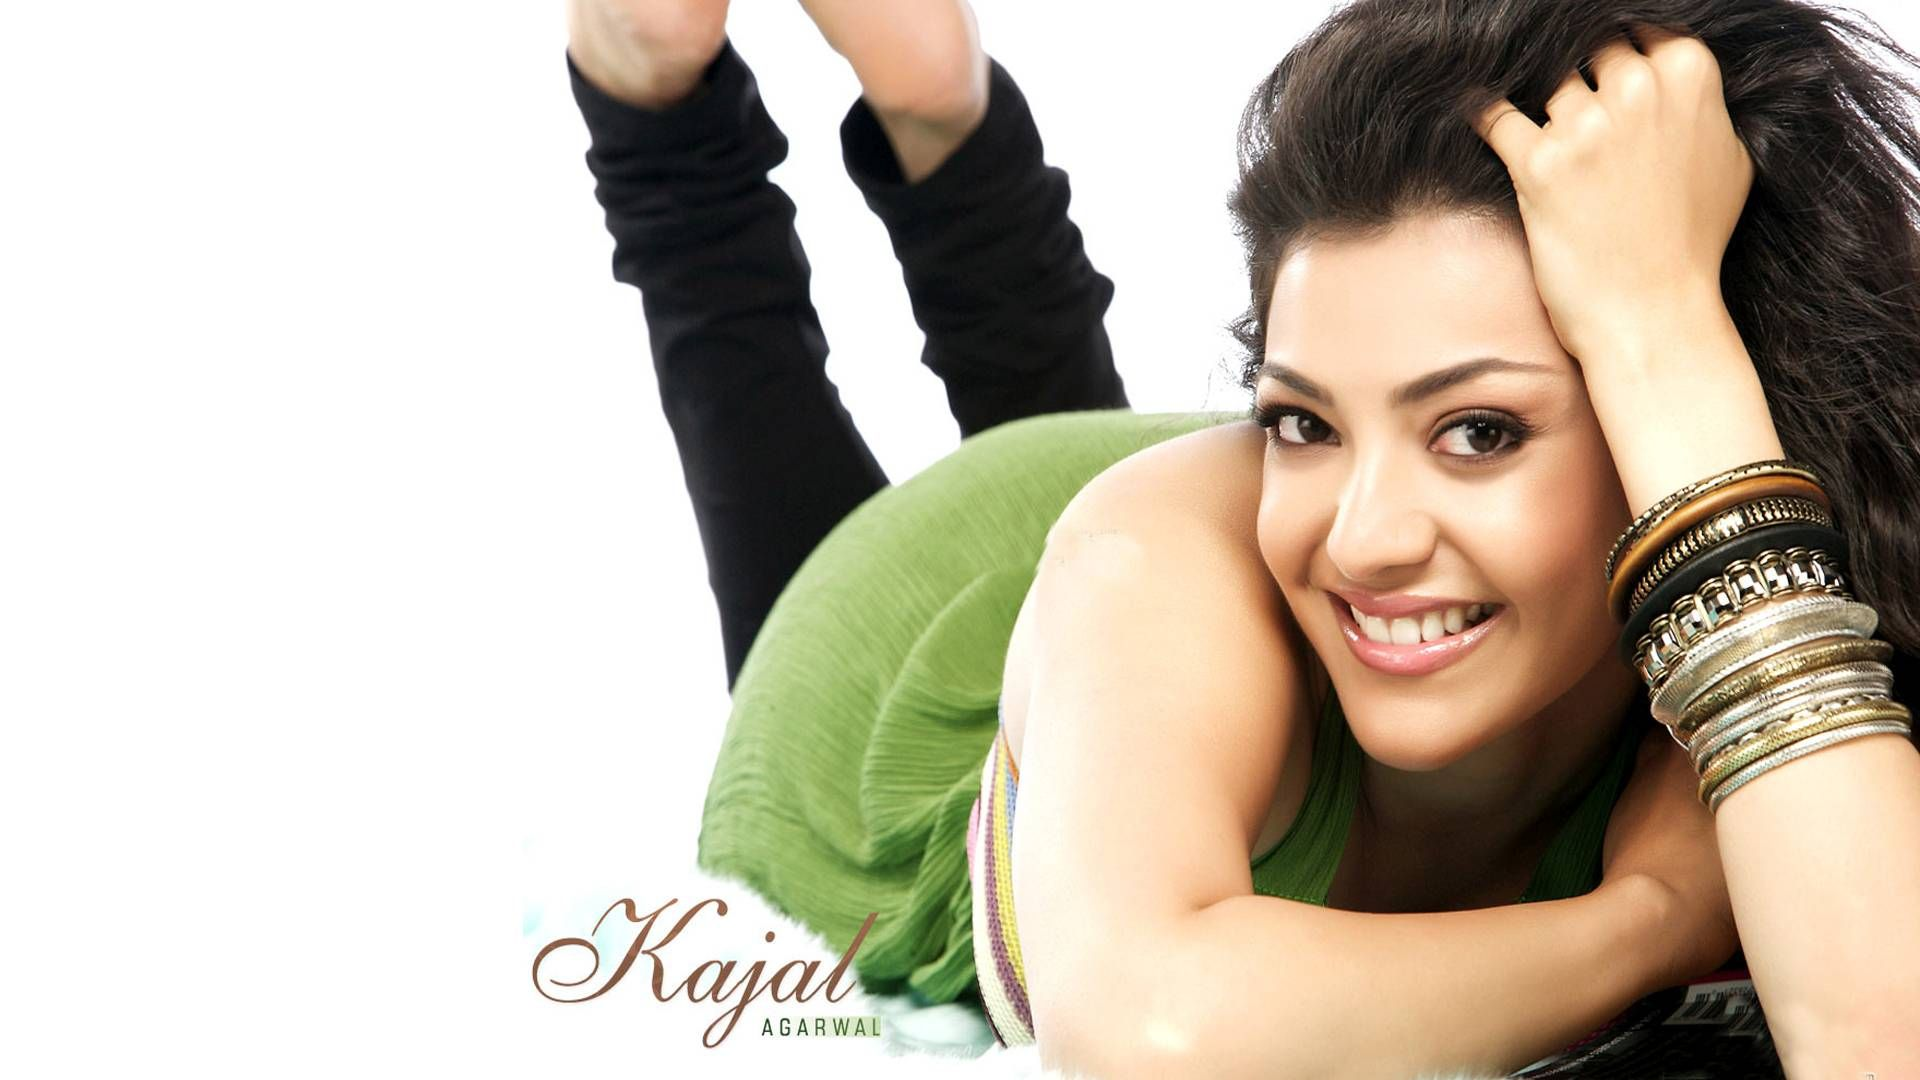 Wallpaper download kajal agarwal - Sunny Leone Hd Wallpapers Live Wallpaper Hd Desktop 1920 1080 Sunny Leone Hd Wallpapers 1920